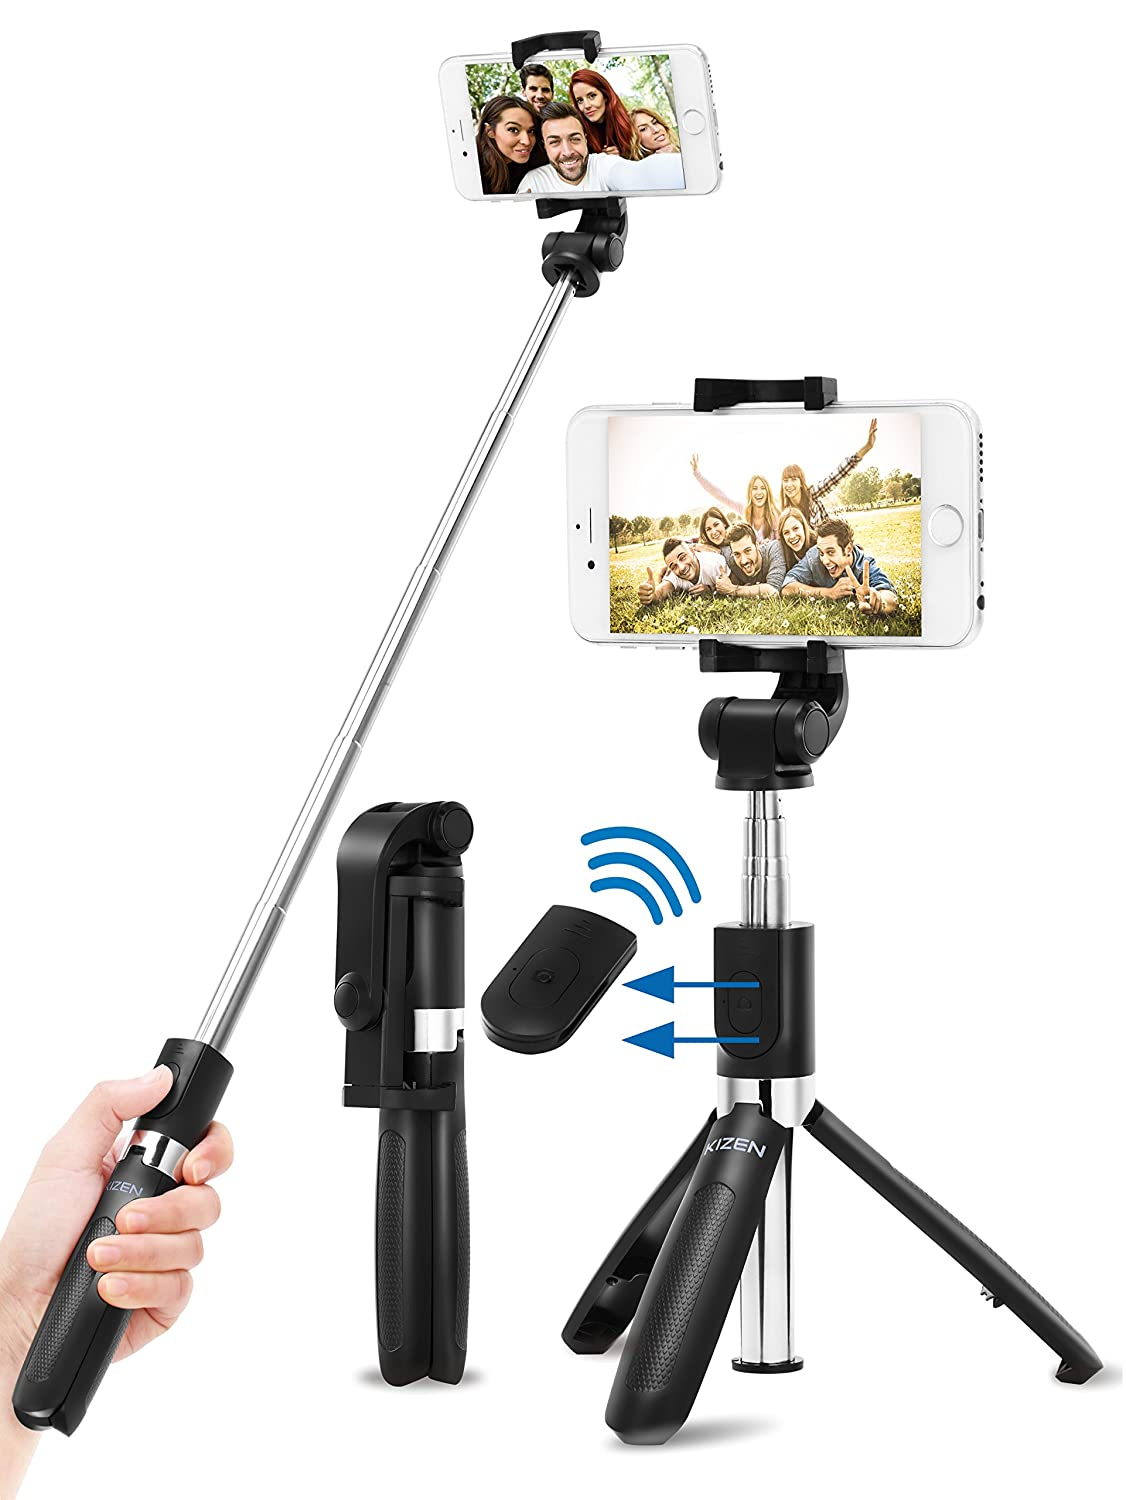 Kizen Selfie Stick Monopod with Integrated Tripod and Wireless Remote Shutter. Extendable Wireless Selfie Stick. for Apple iPhone 6,7,8,X & Plus, Samsung Galaxy S6,S7,S8, Android